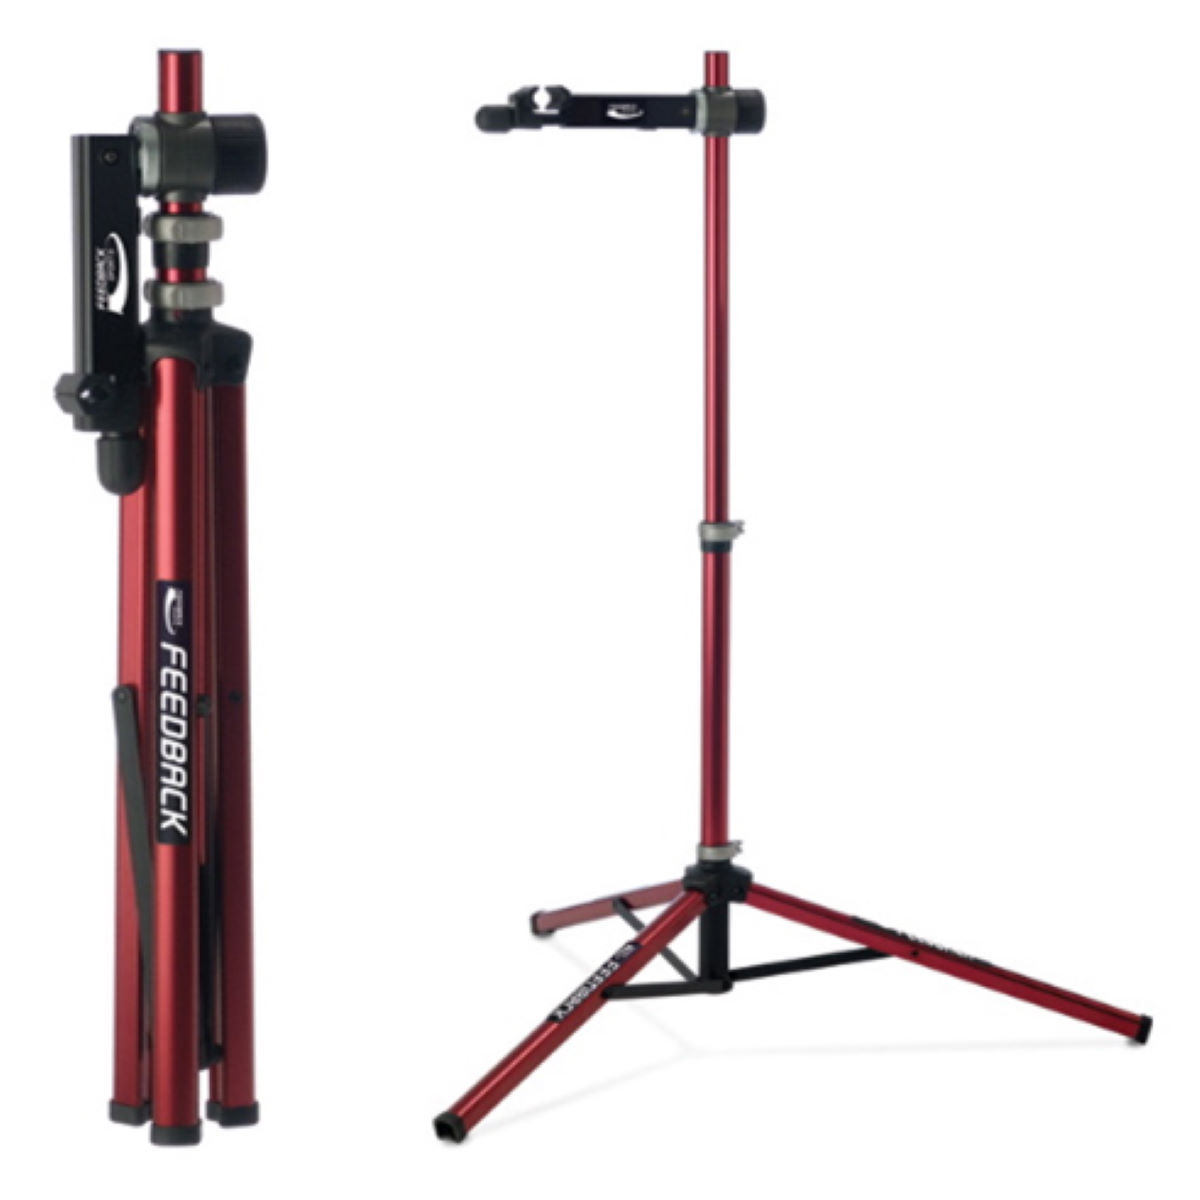 Feedback Sports Pro Ultralight Workstand